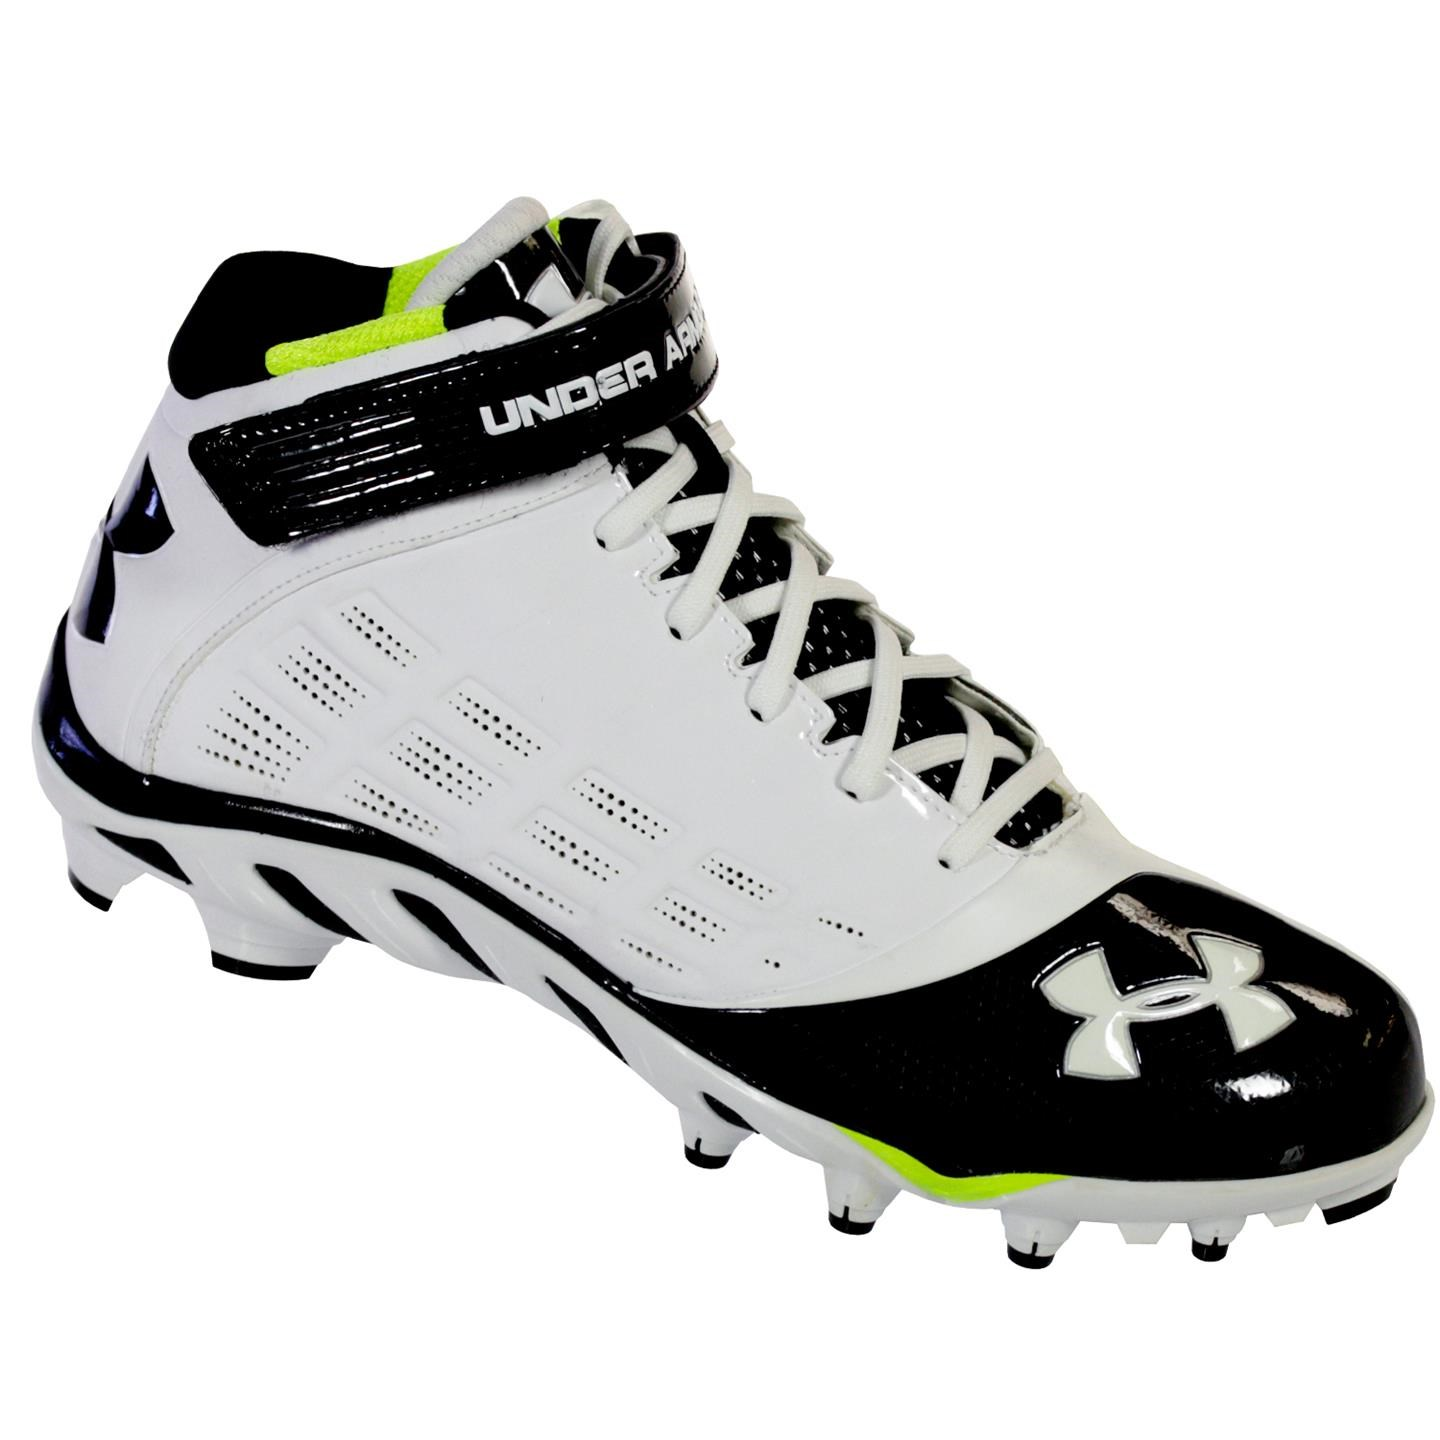 Under Armour SPINE FIERCE MID MC Men Football Shoe WHBKNEOGN 11M